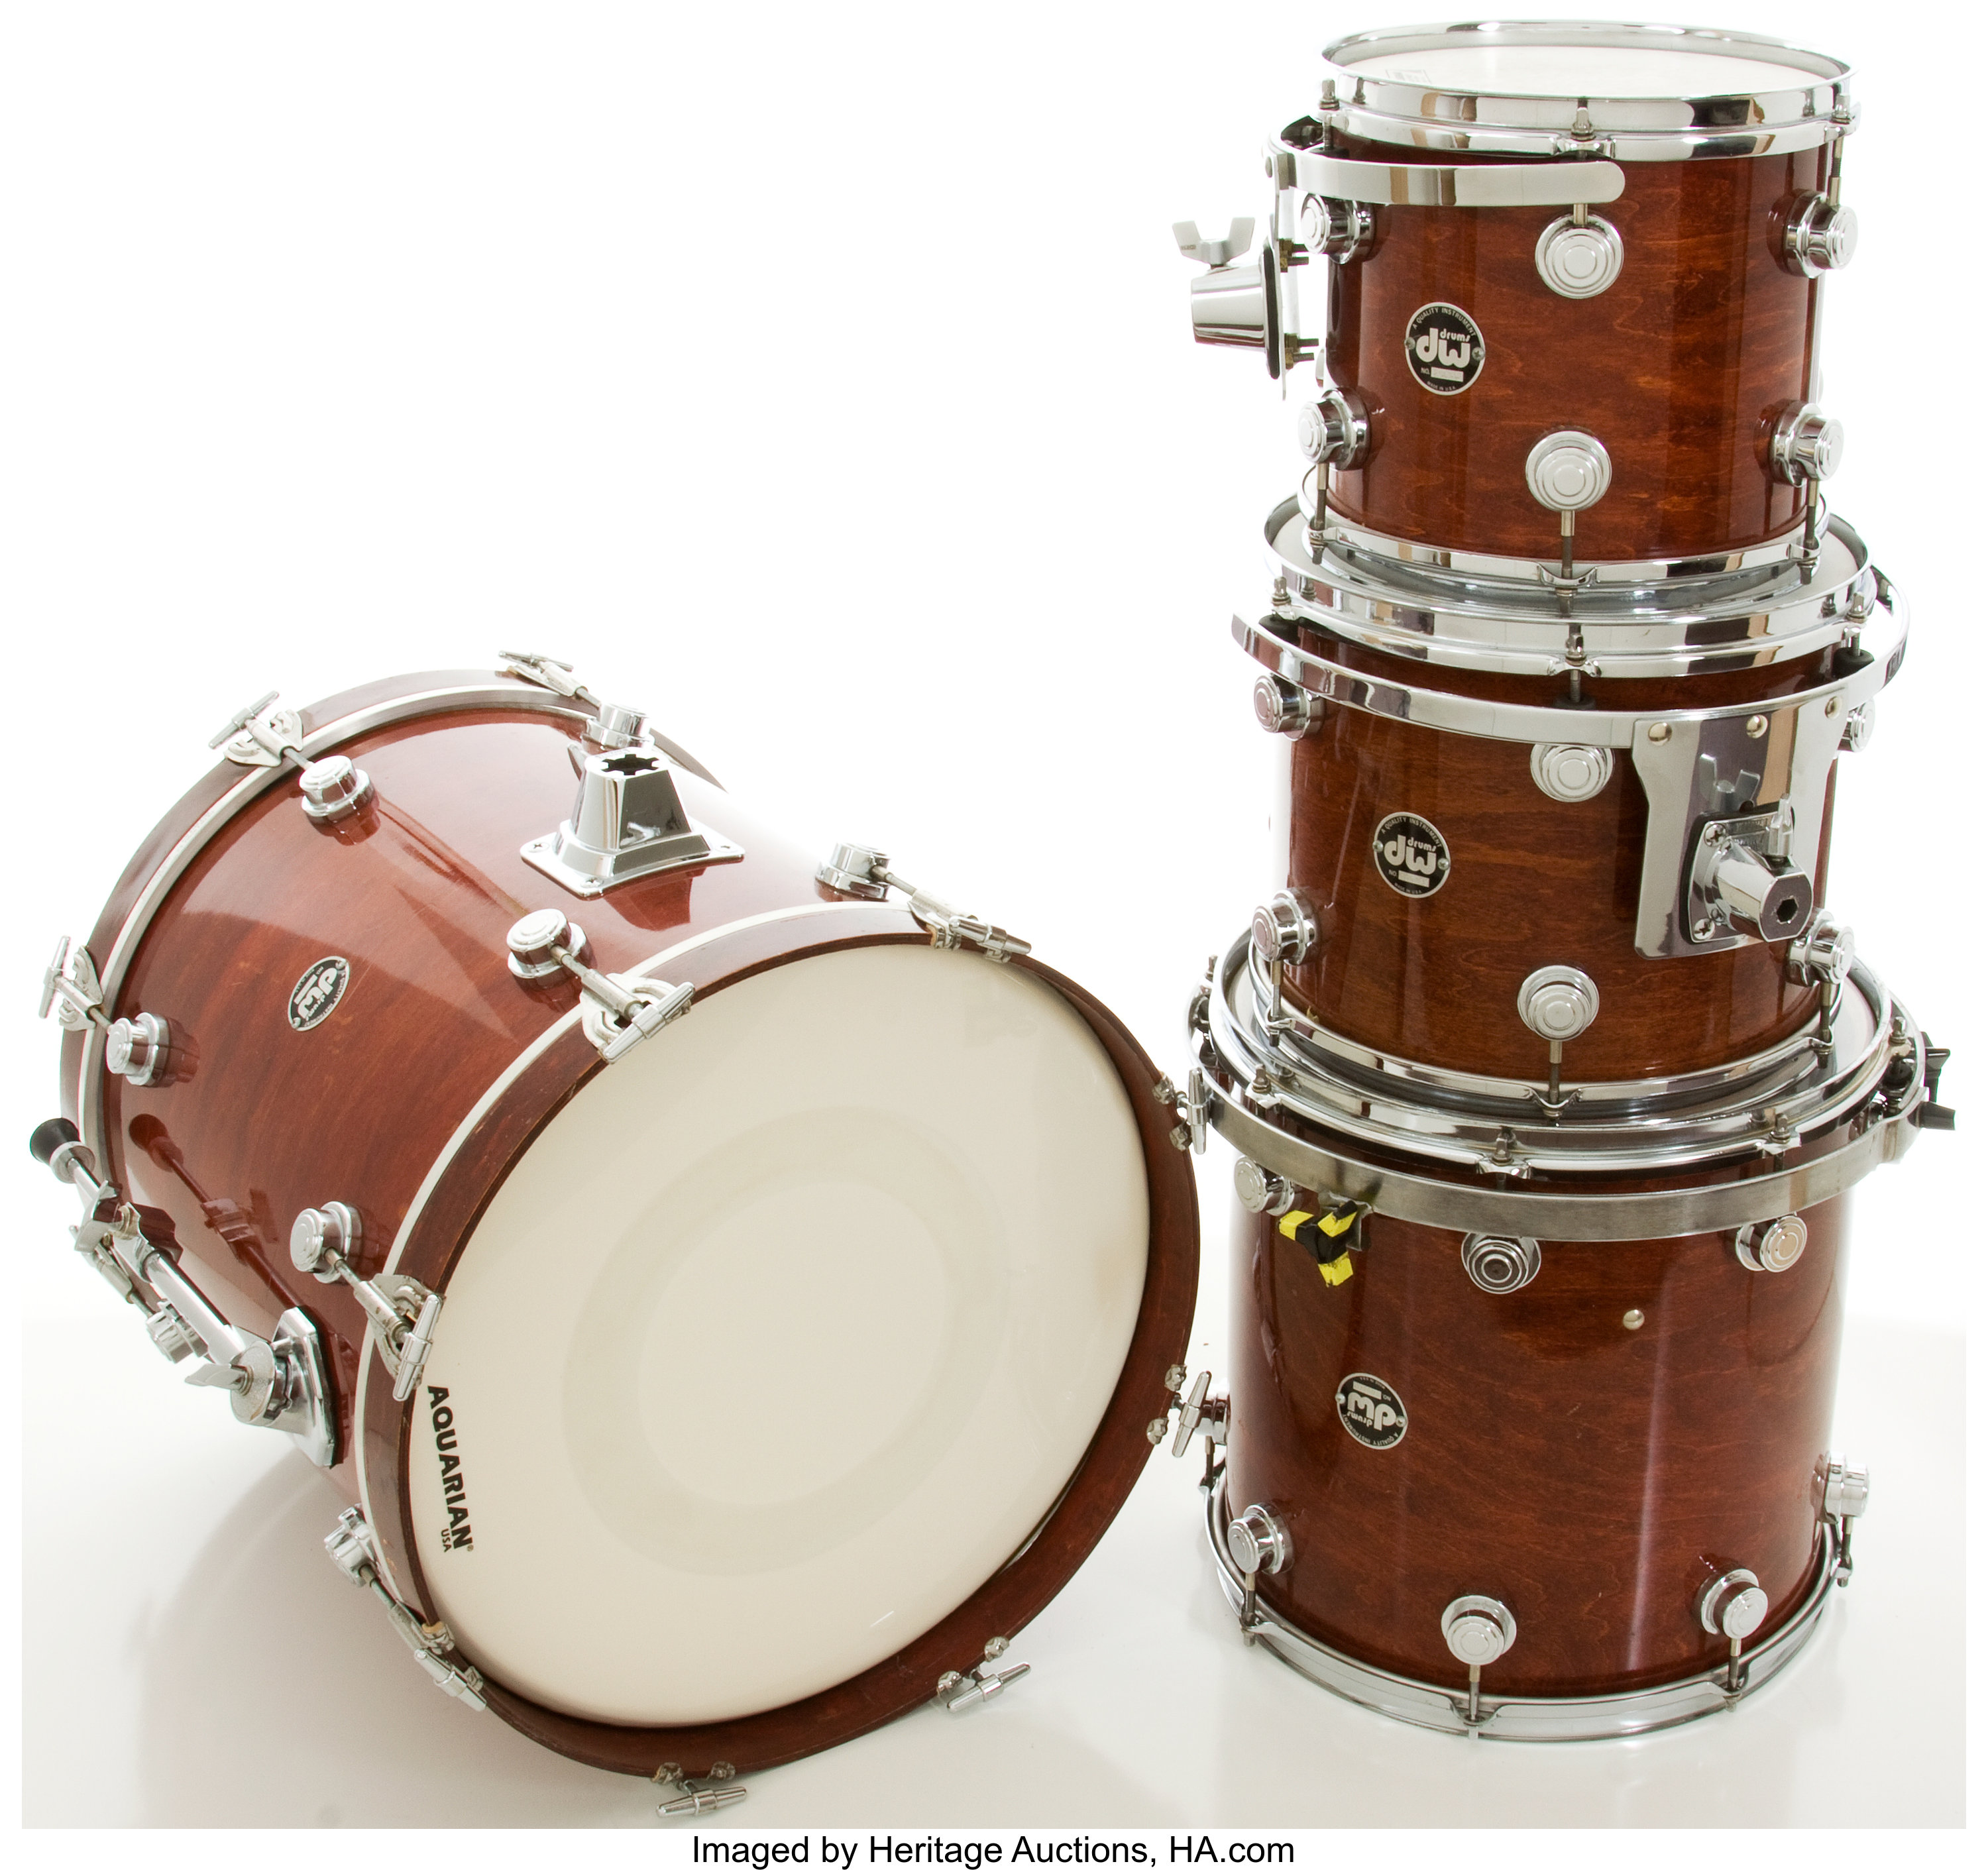 Yamaha DW Wine Red Drum Set, #200169     Musical Instruments Drums